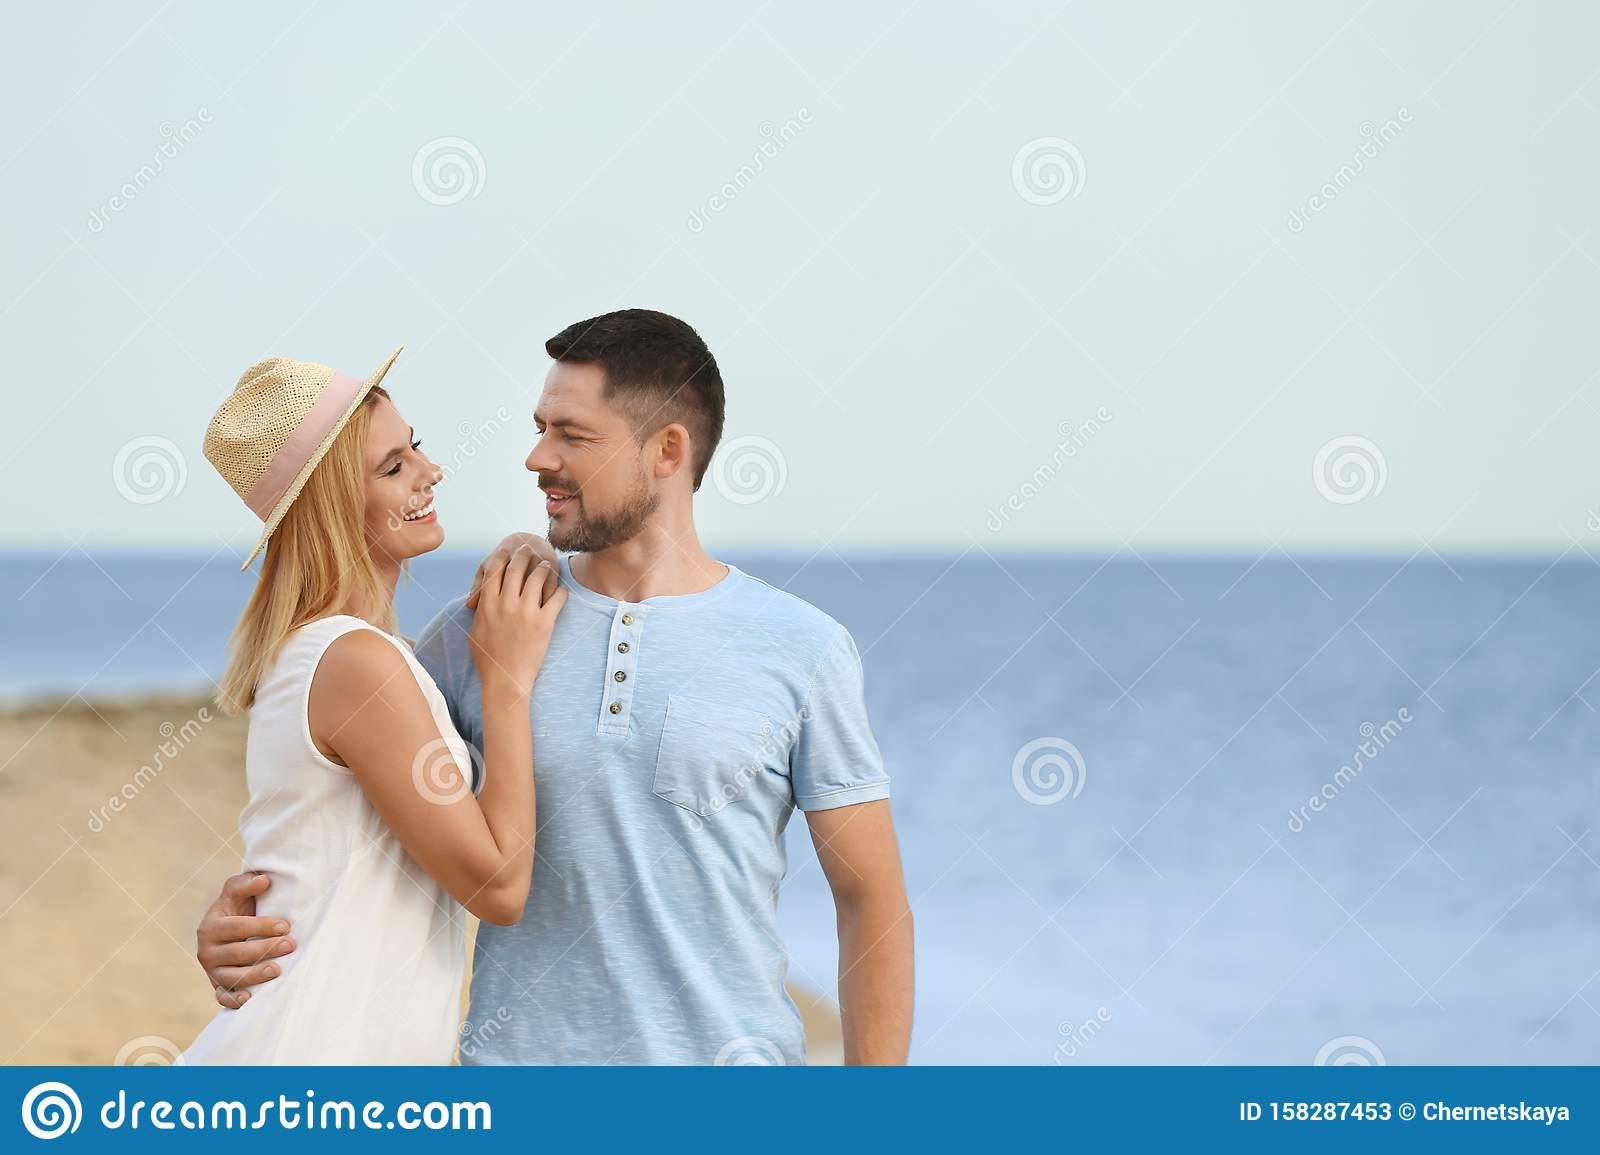 Happy romantic couple time together on beach, space for text